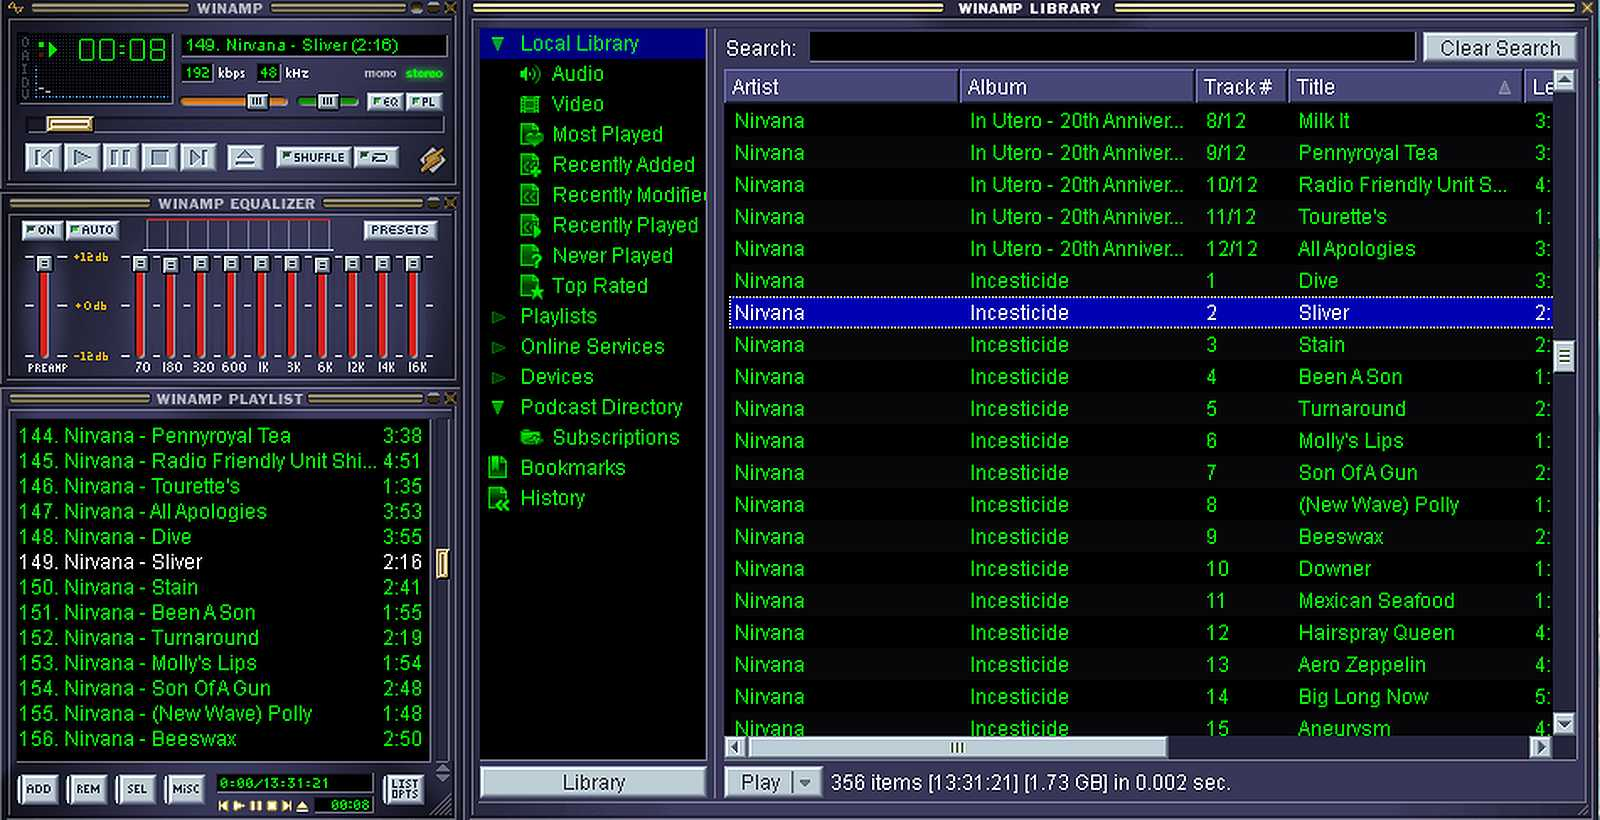 winamp MP3 player with classic skin